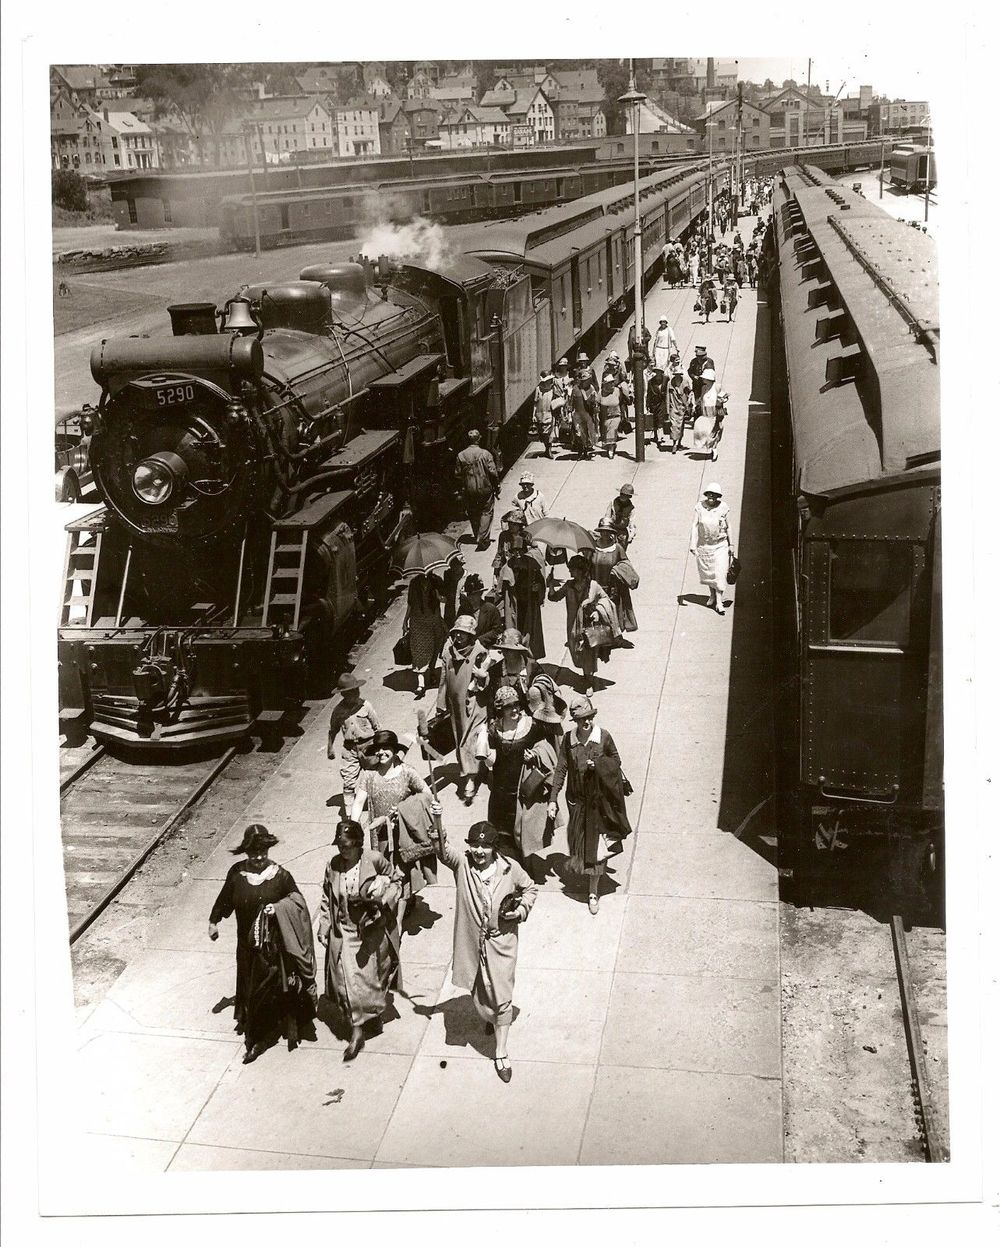 Atlantic & St. Lawrence RR disembarking passengers near Munjoy Hill. Photo by Edwin Robinson, date unknown.